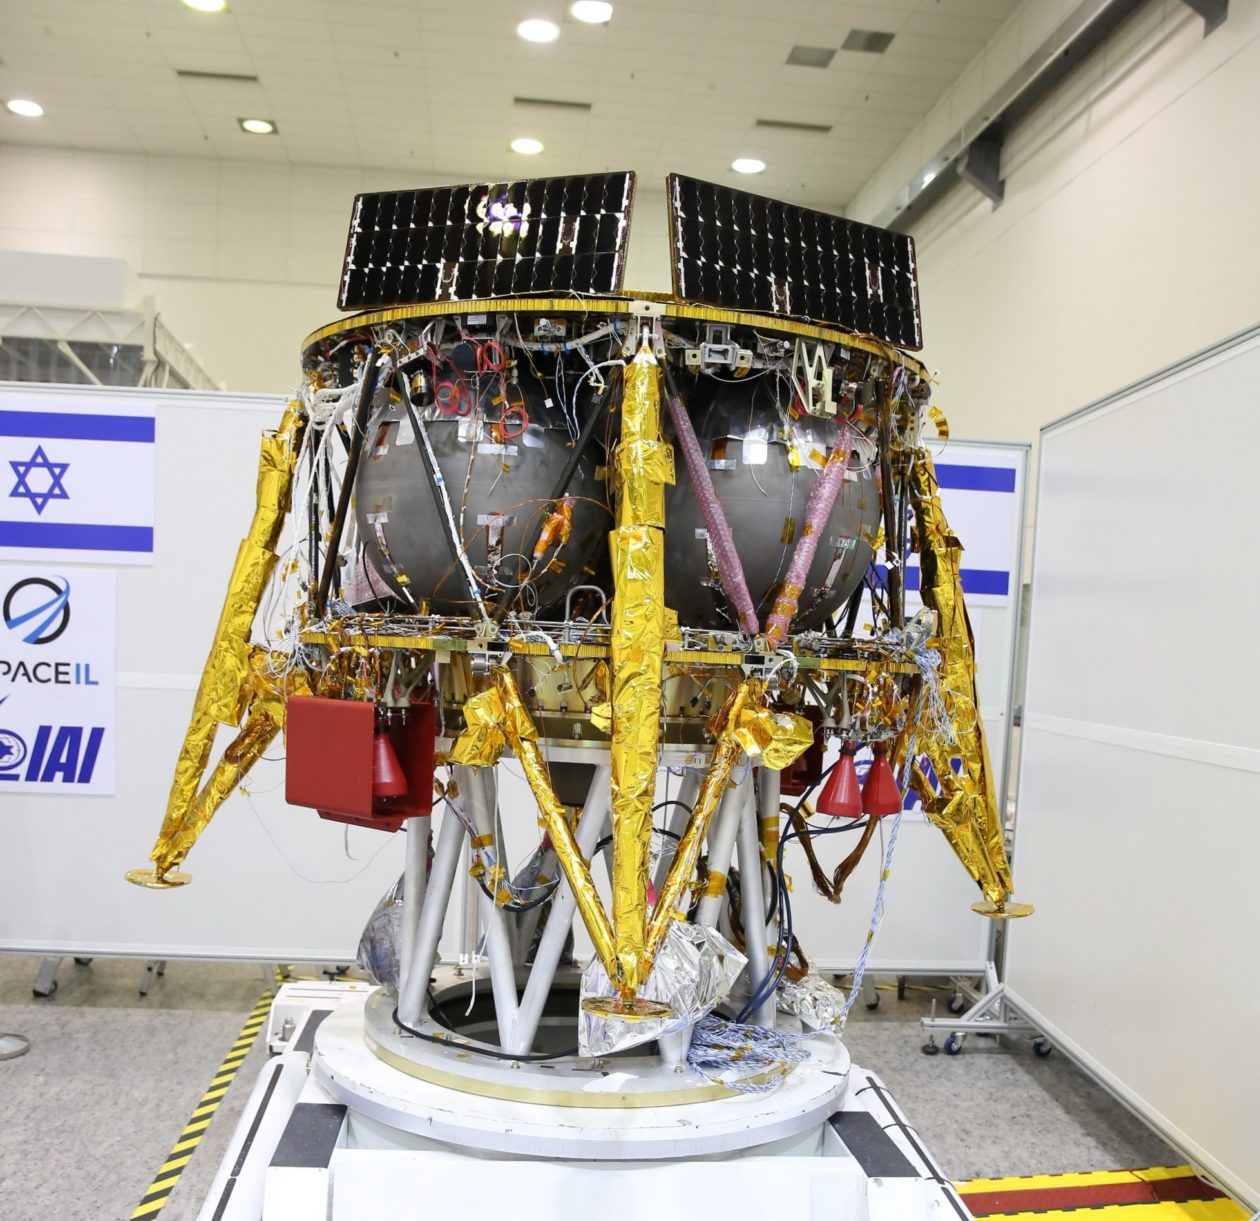 Israel S Spaceil Team Says Spacex Will Launch Its Lunar